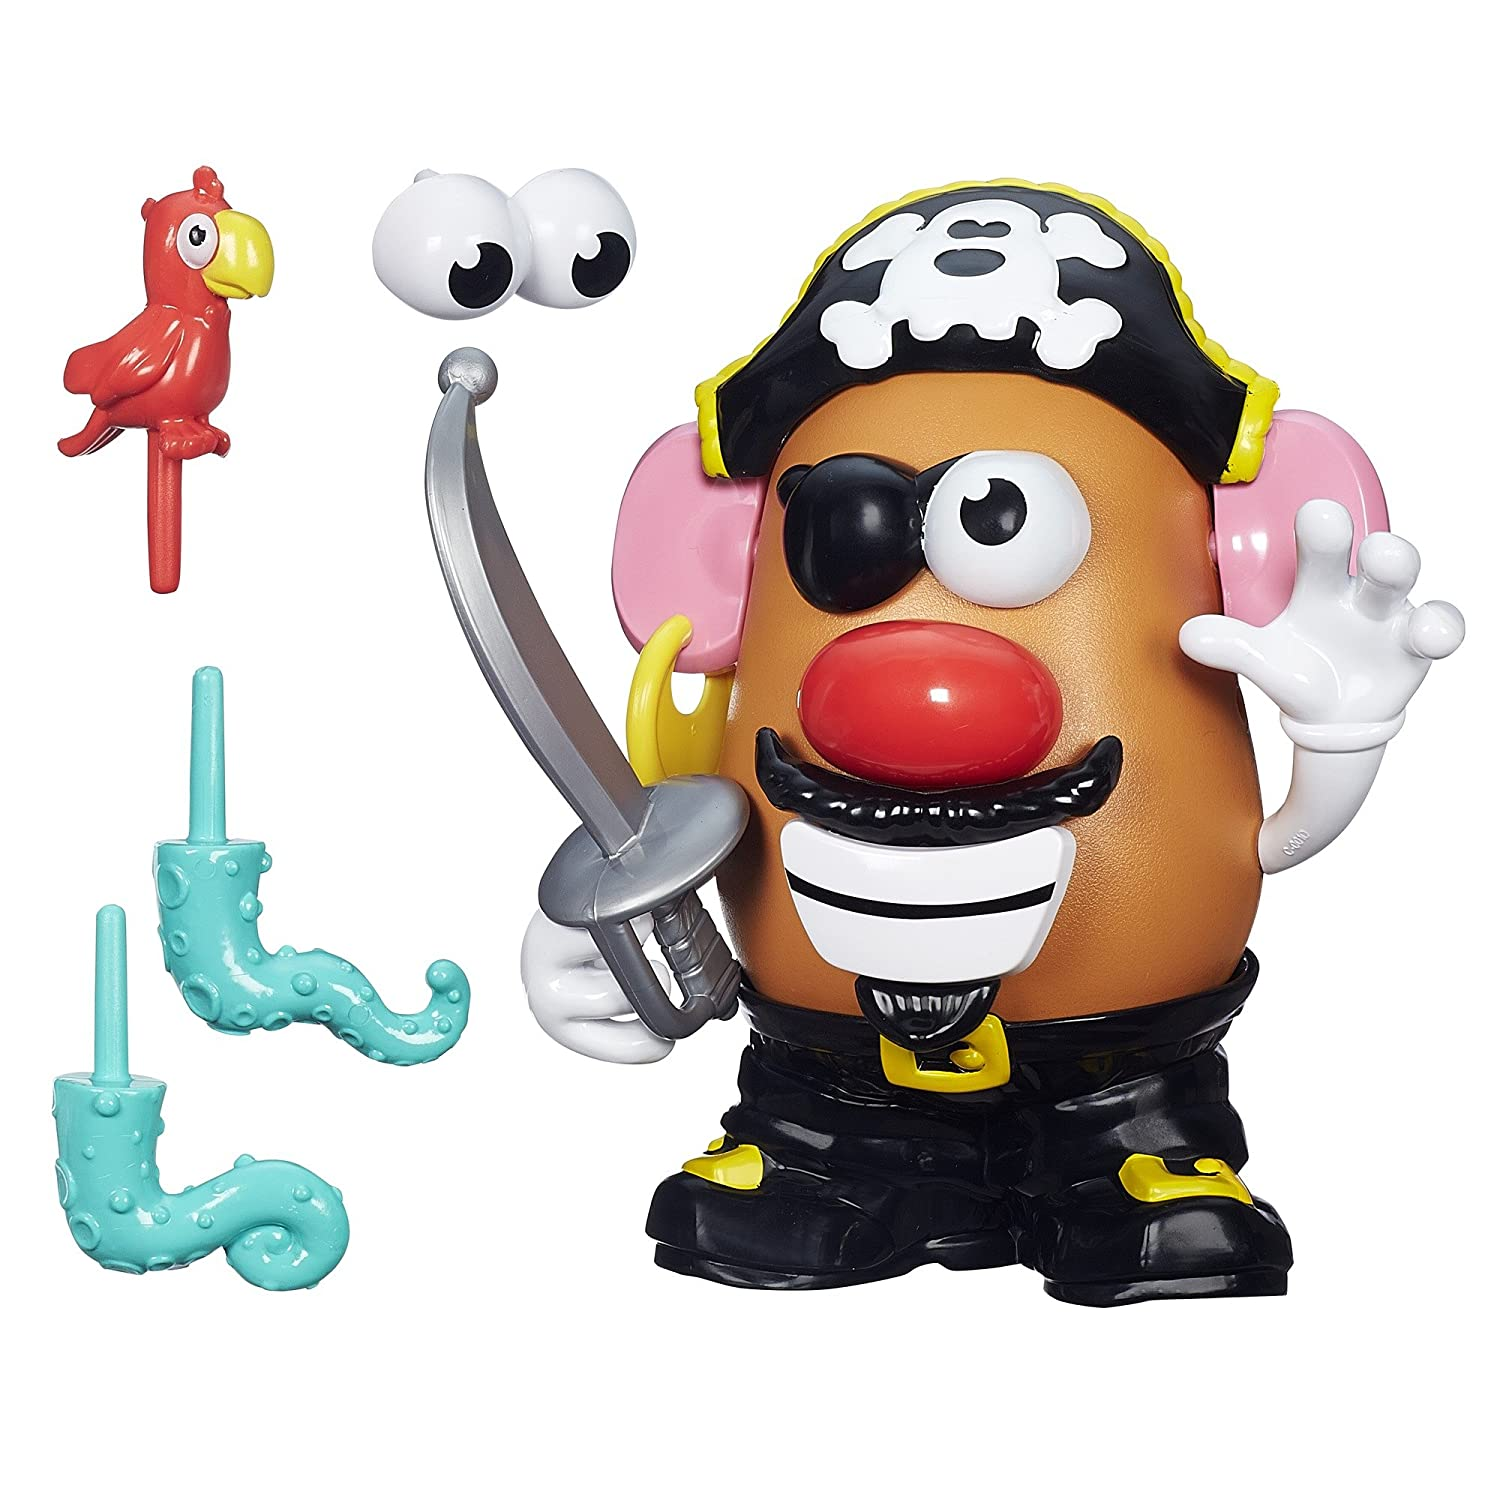 amazon playskool friends mr potato head pirate spud by mr potato